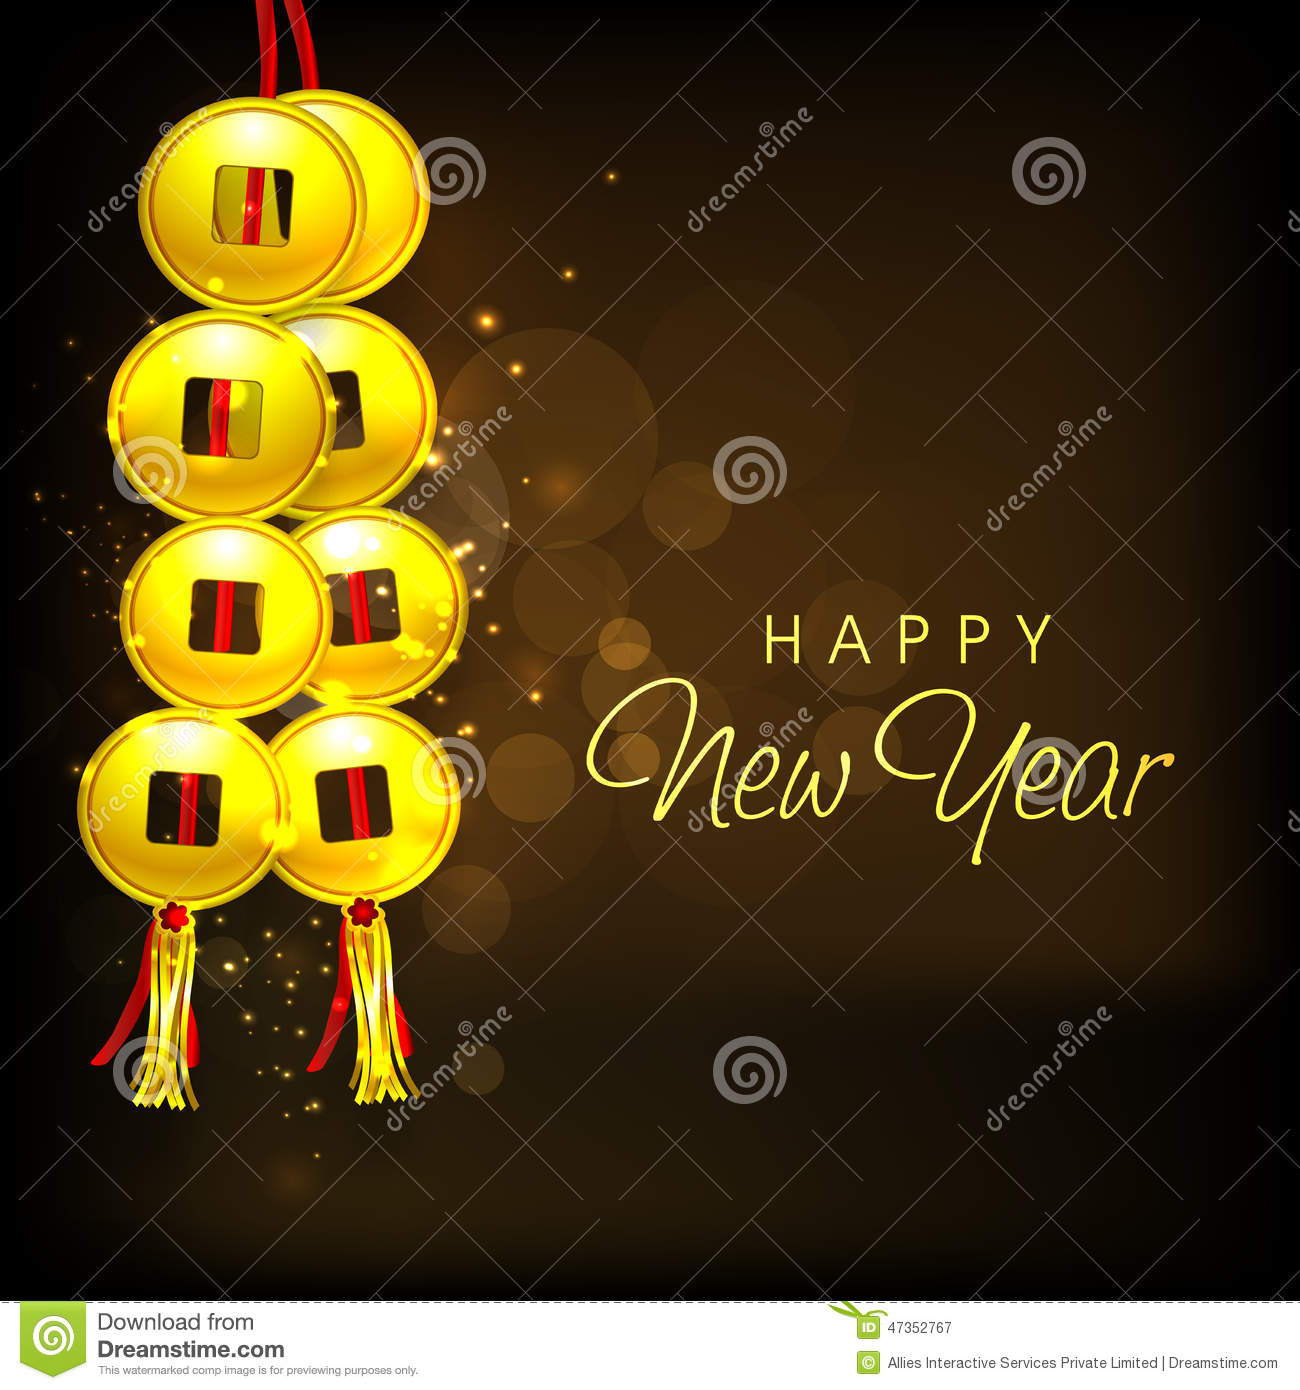 Beautiful Greeting Card Design For Happy New Year Celebrations